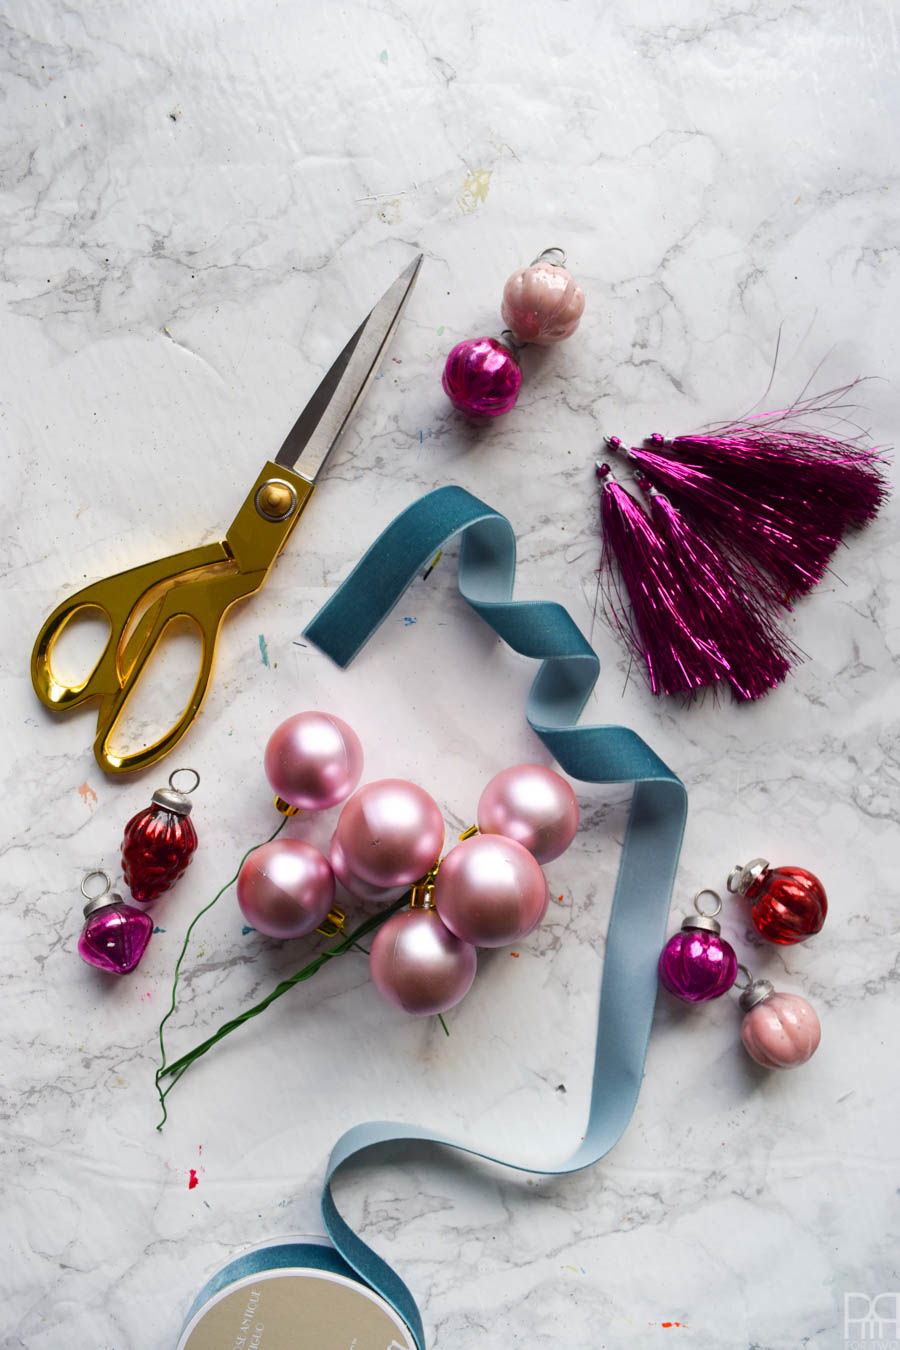 Create perfect Juniper Berry Christmas Swags using Afloral stems and ornaments. They're the perfect decor for your kitchen or bathroom, and don't take up as much room as a wreath.